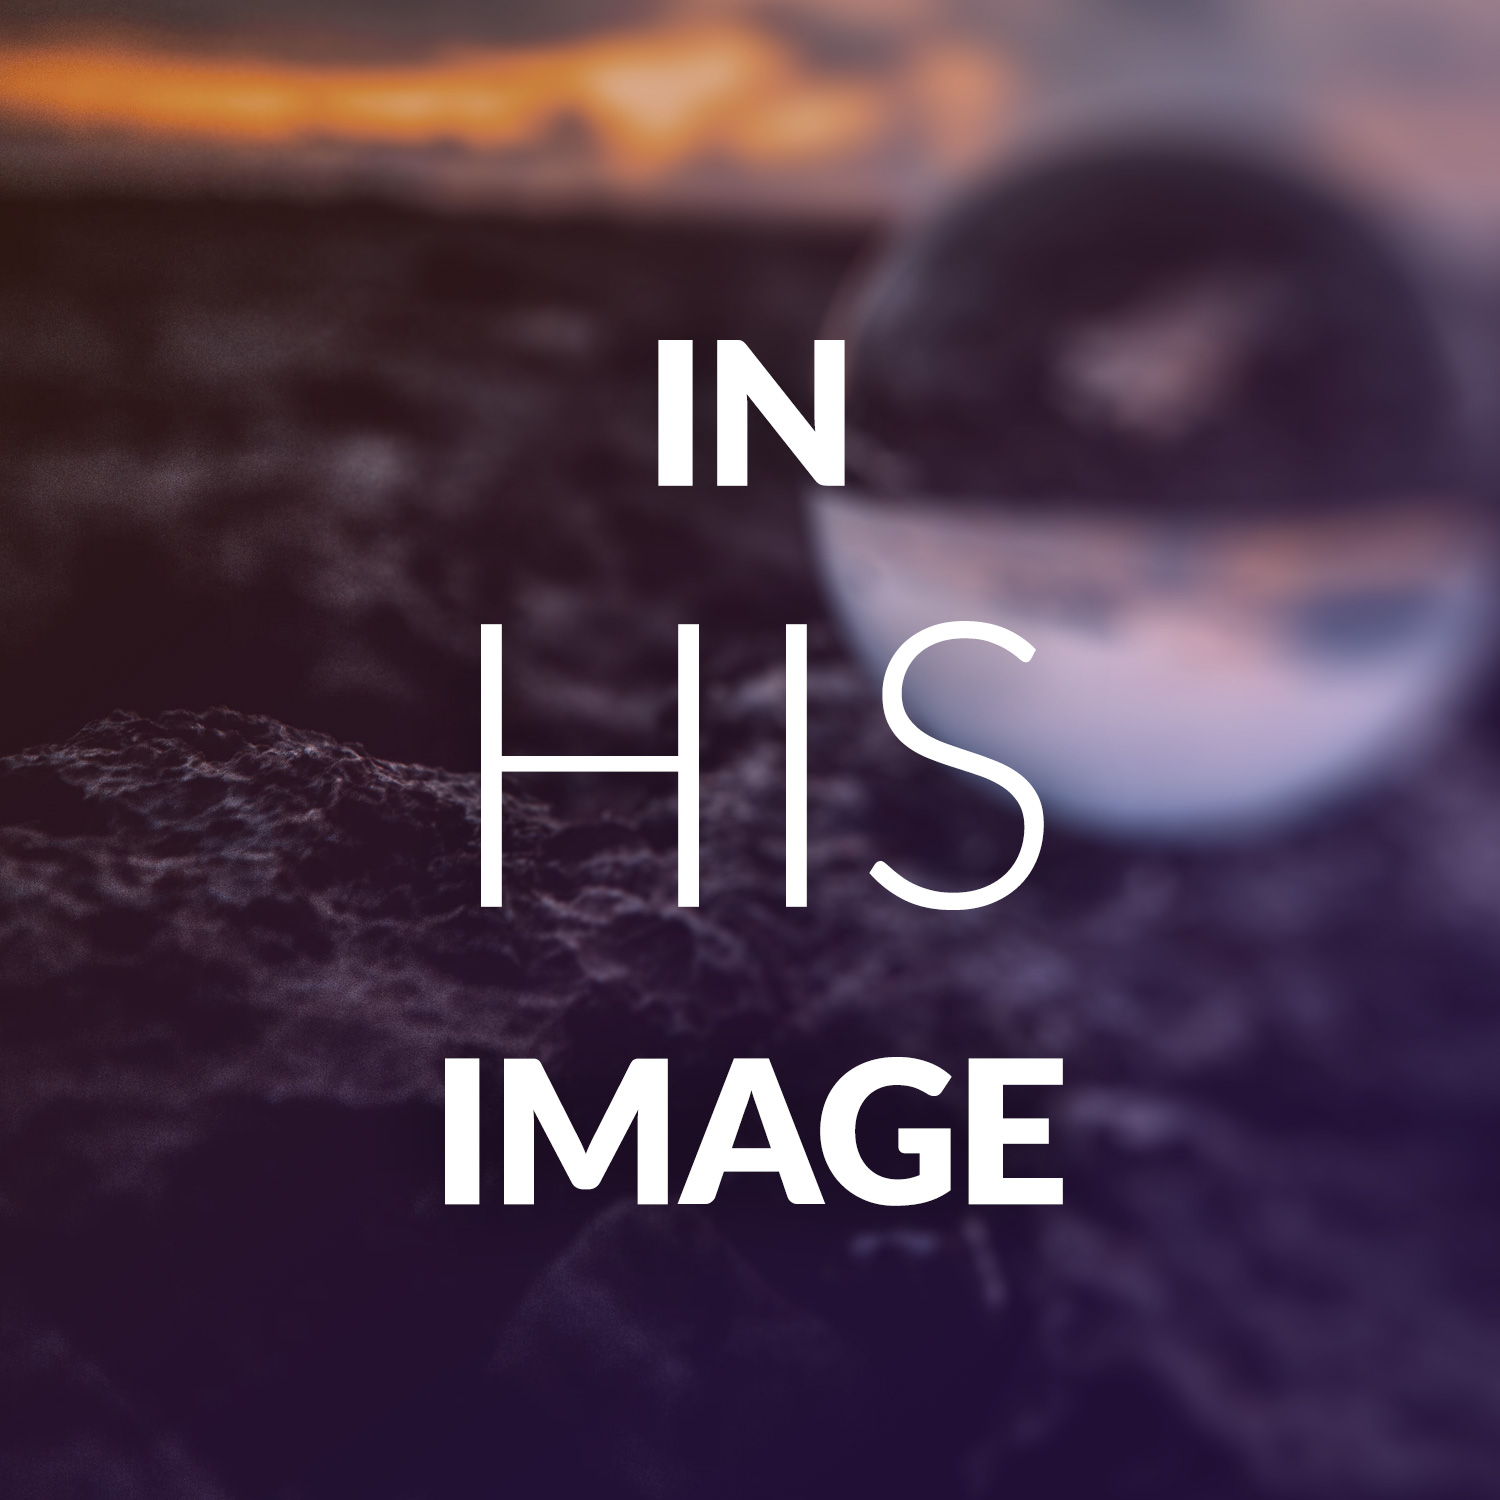 In His Image: Just